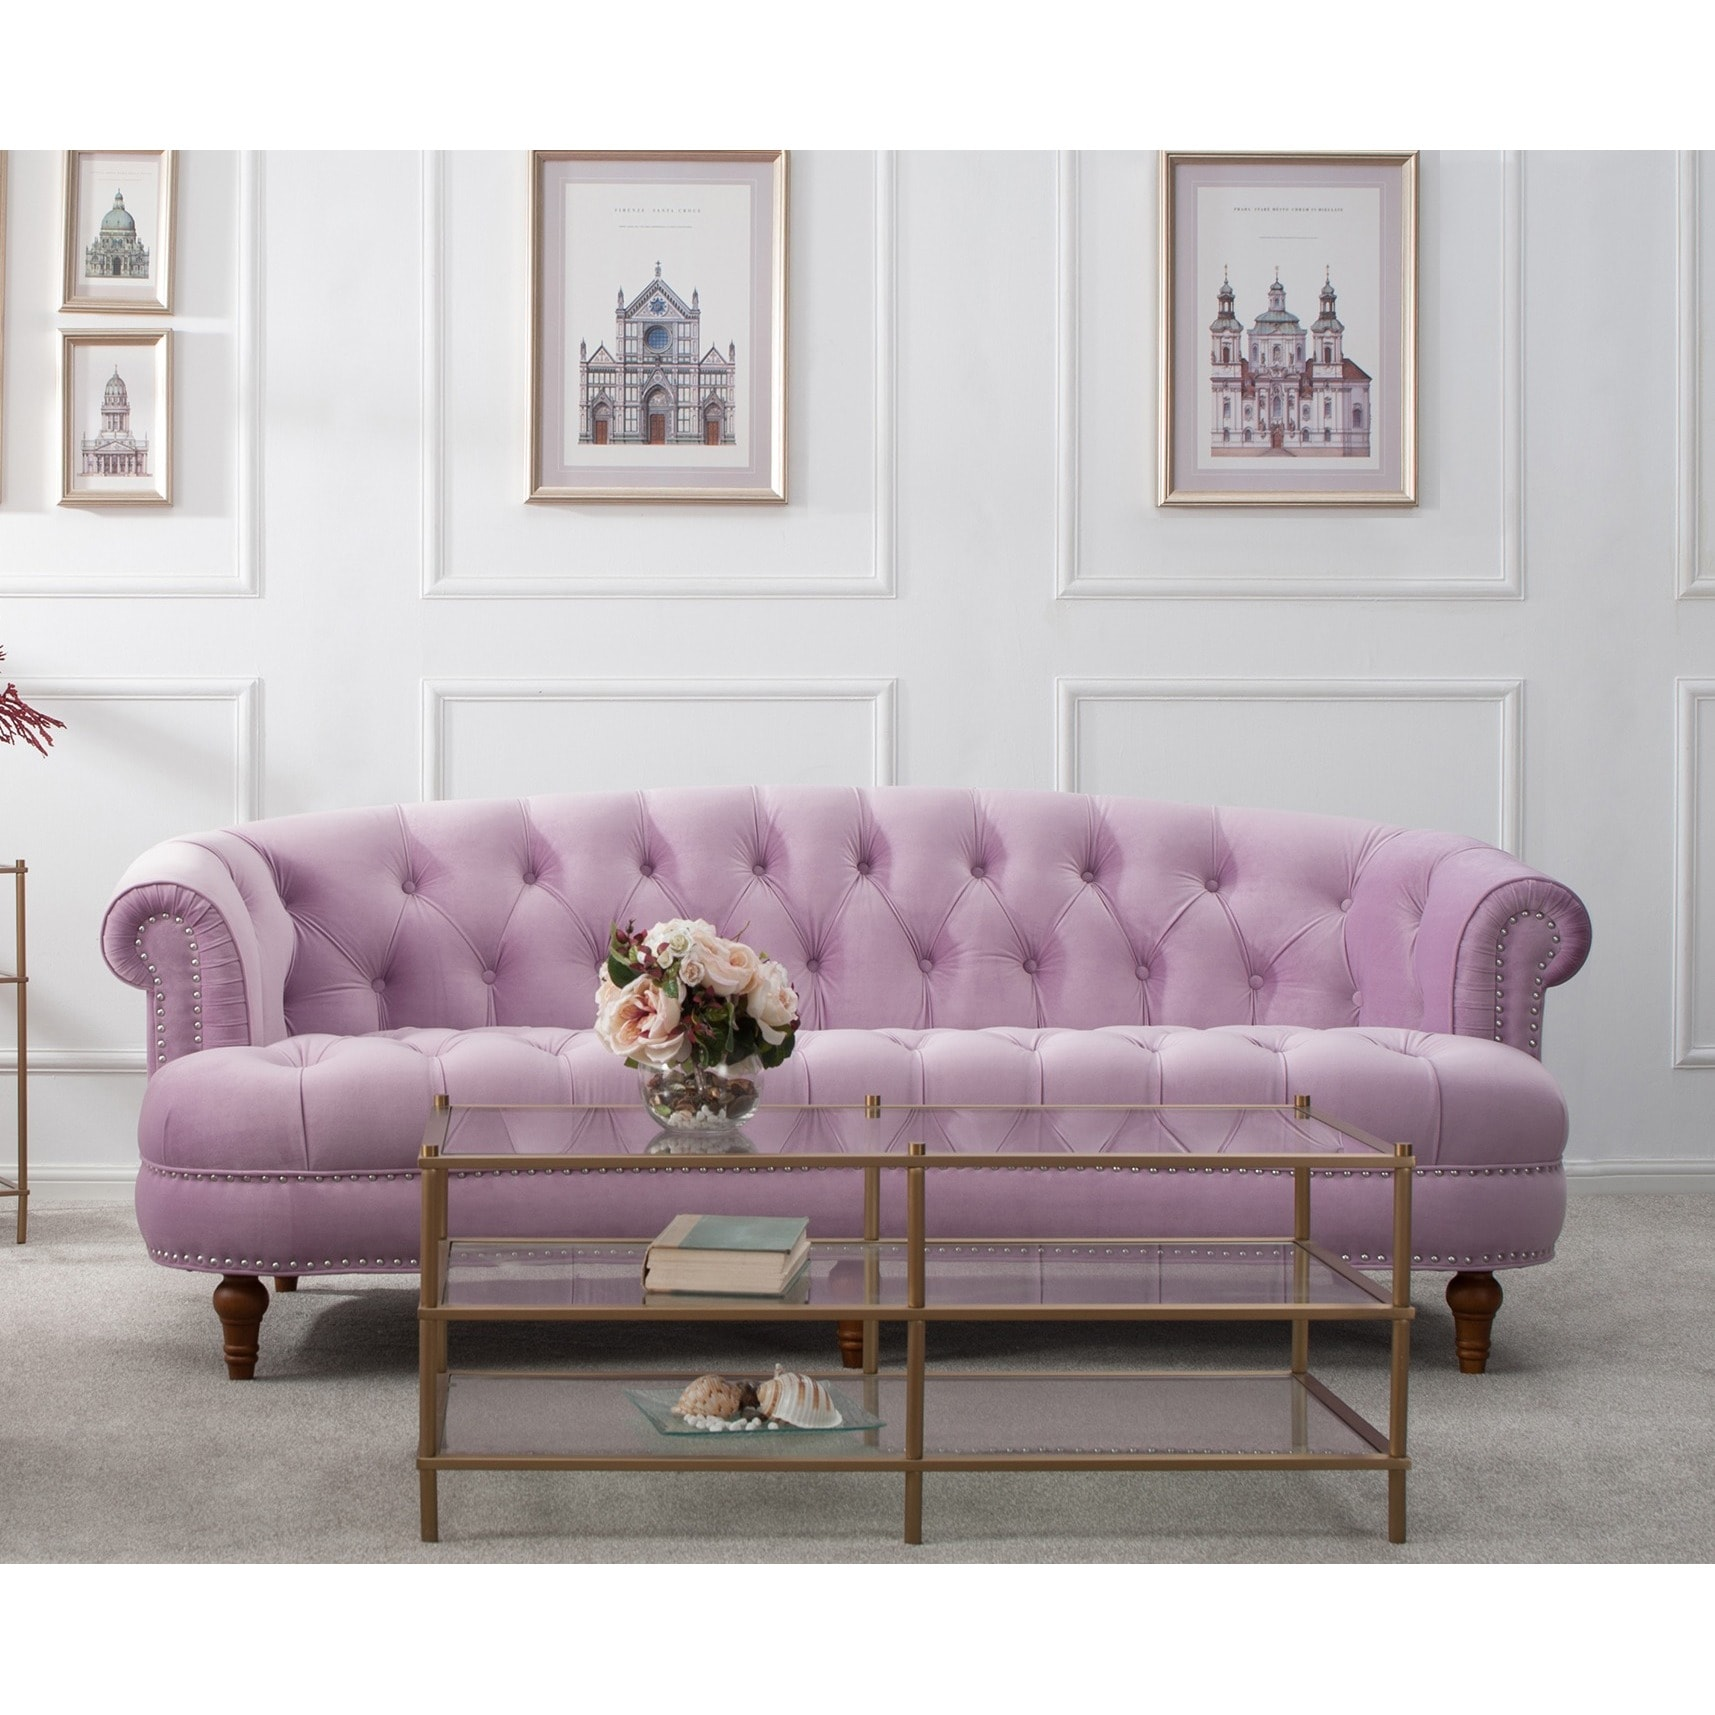 jennifer taylor la rosa chesterfield sofa ebay. Black Bedroom Furniture Sets. Home Design Ideas